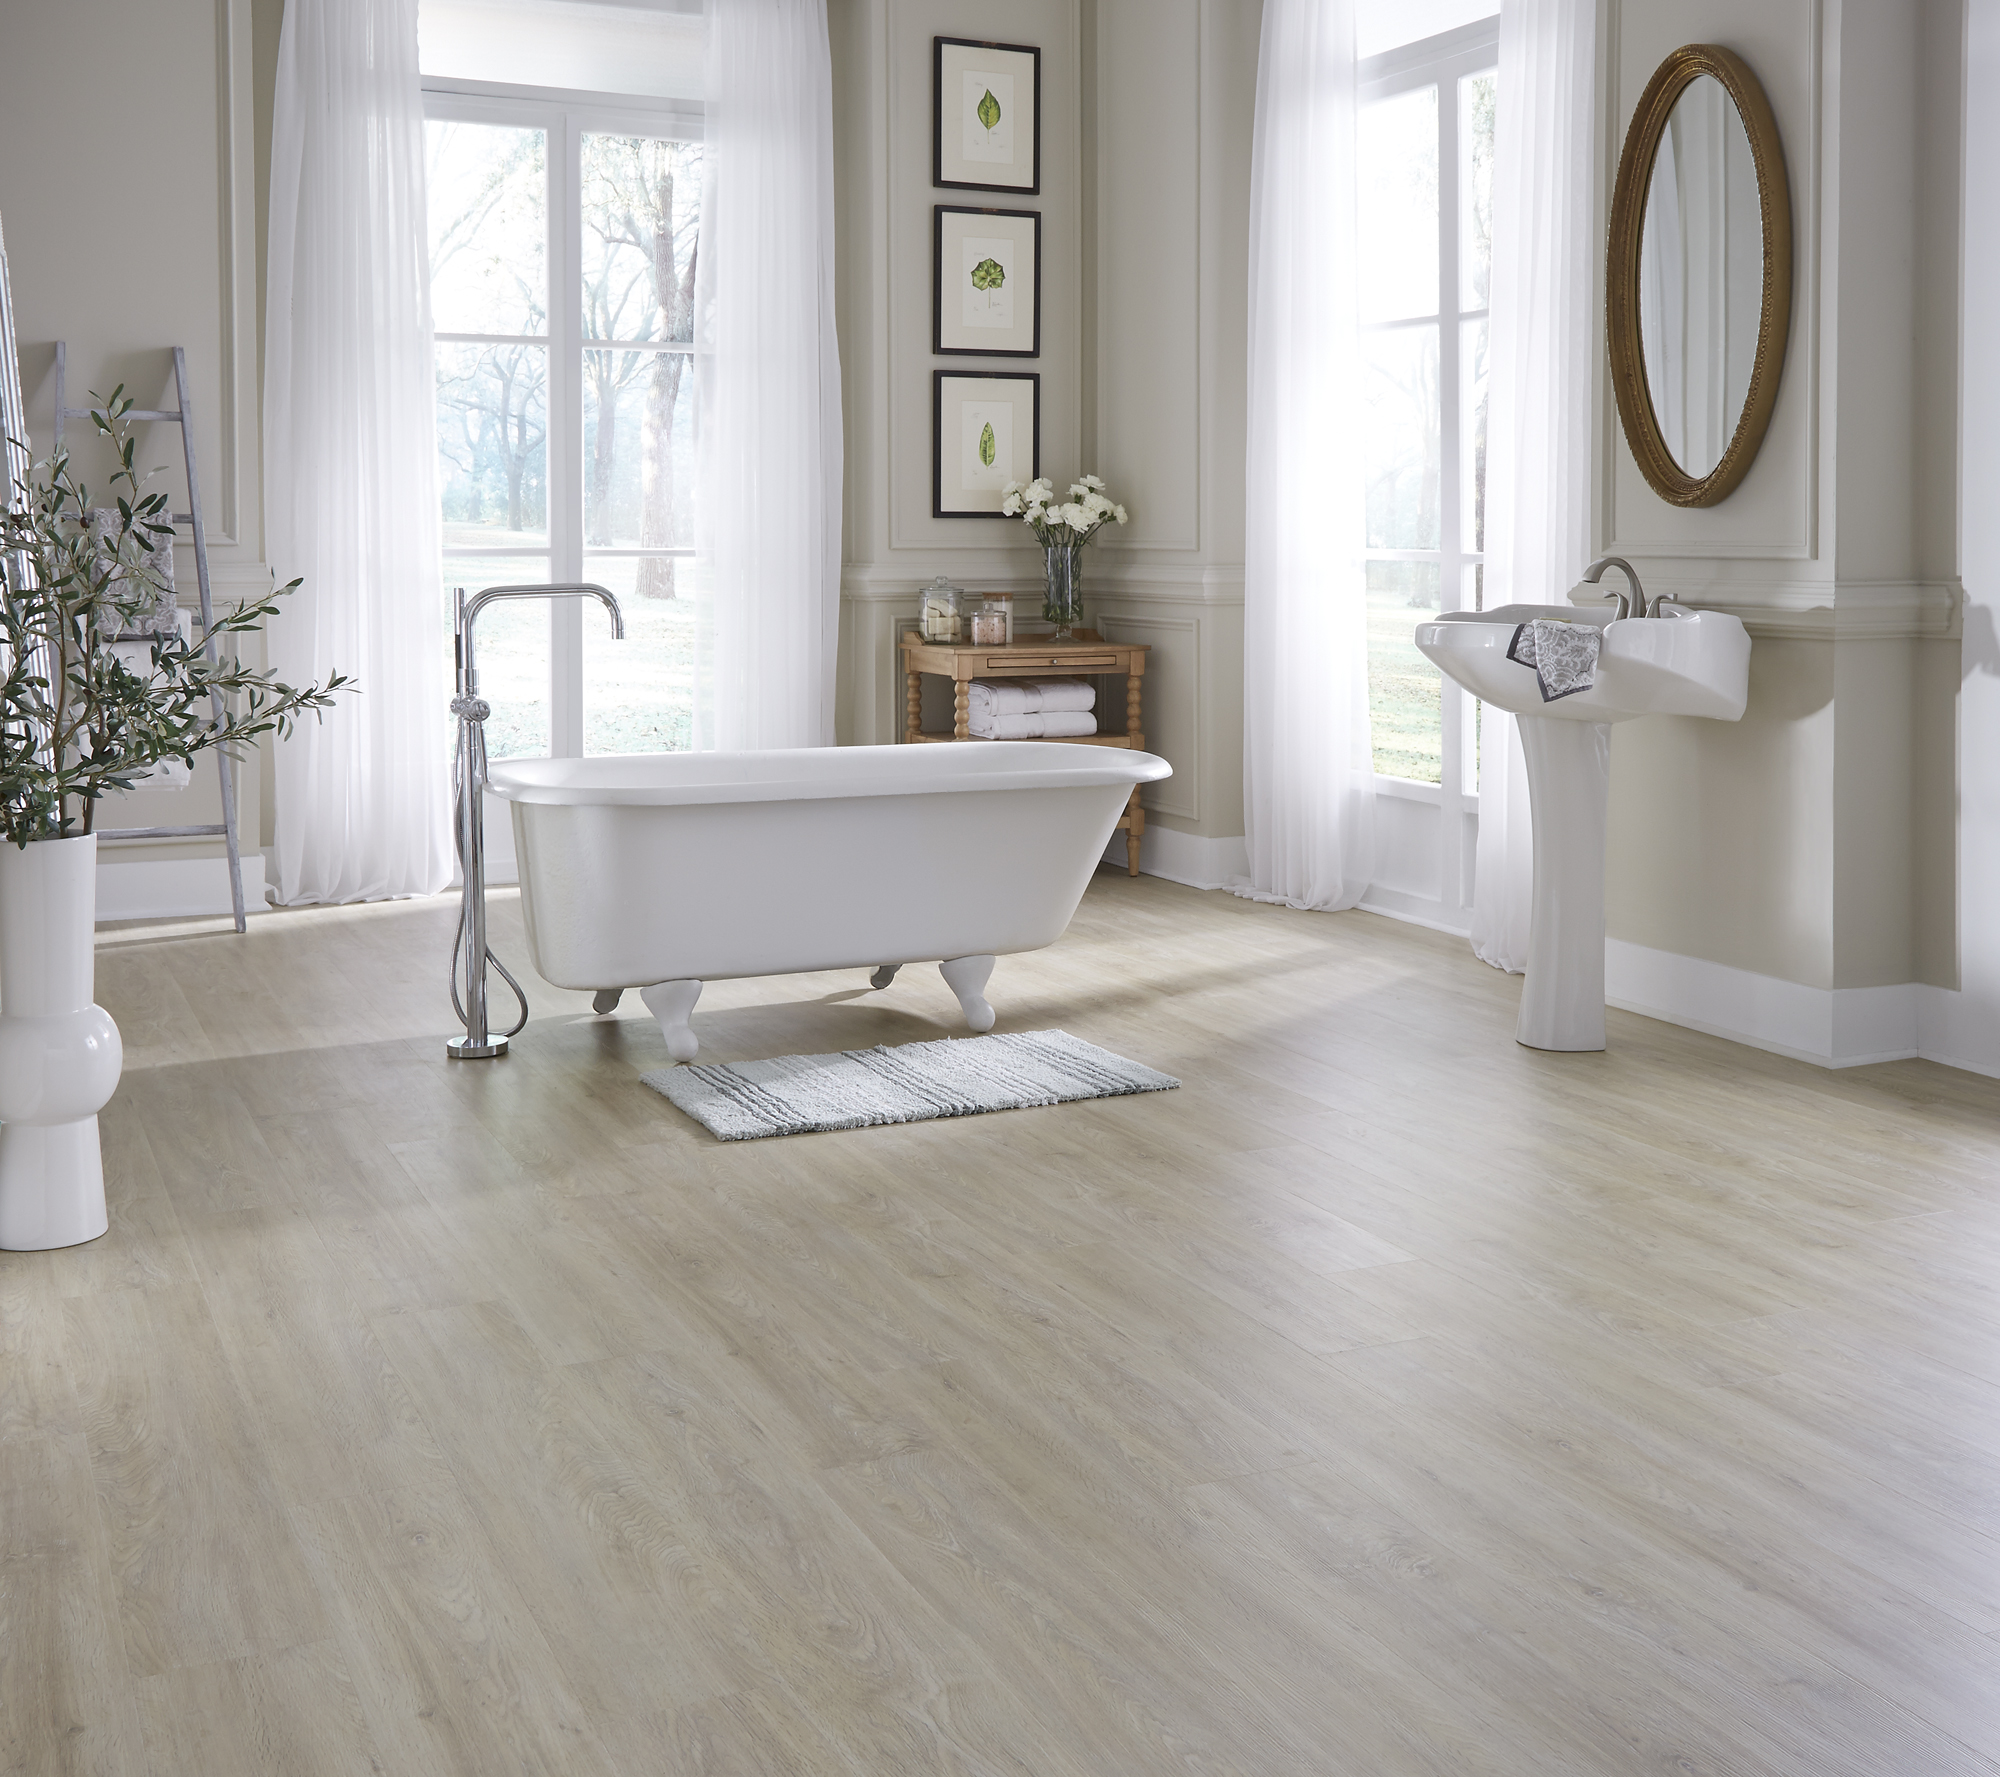 Waterproof laminate flooring evp - the ultimate waterproof flooring! XLGDIHW